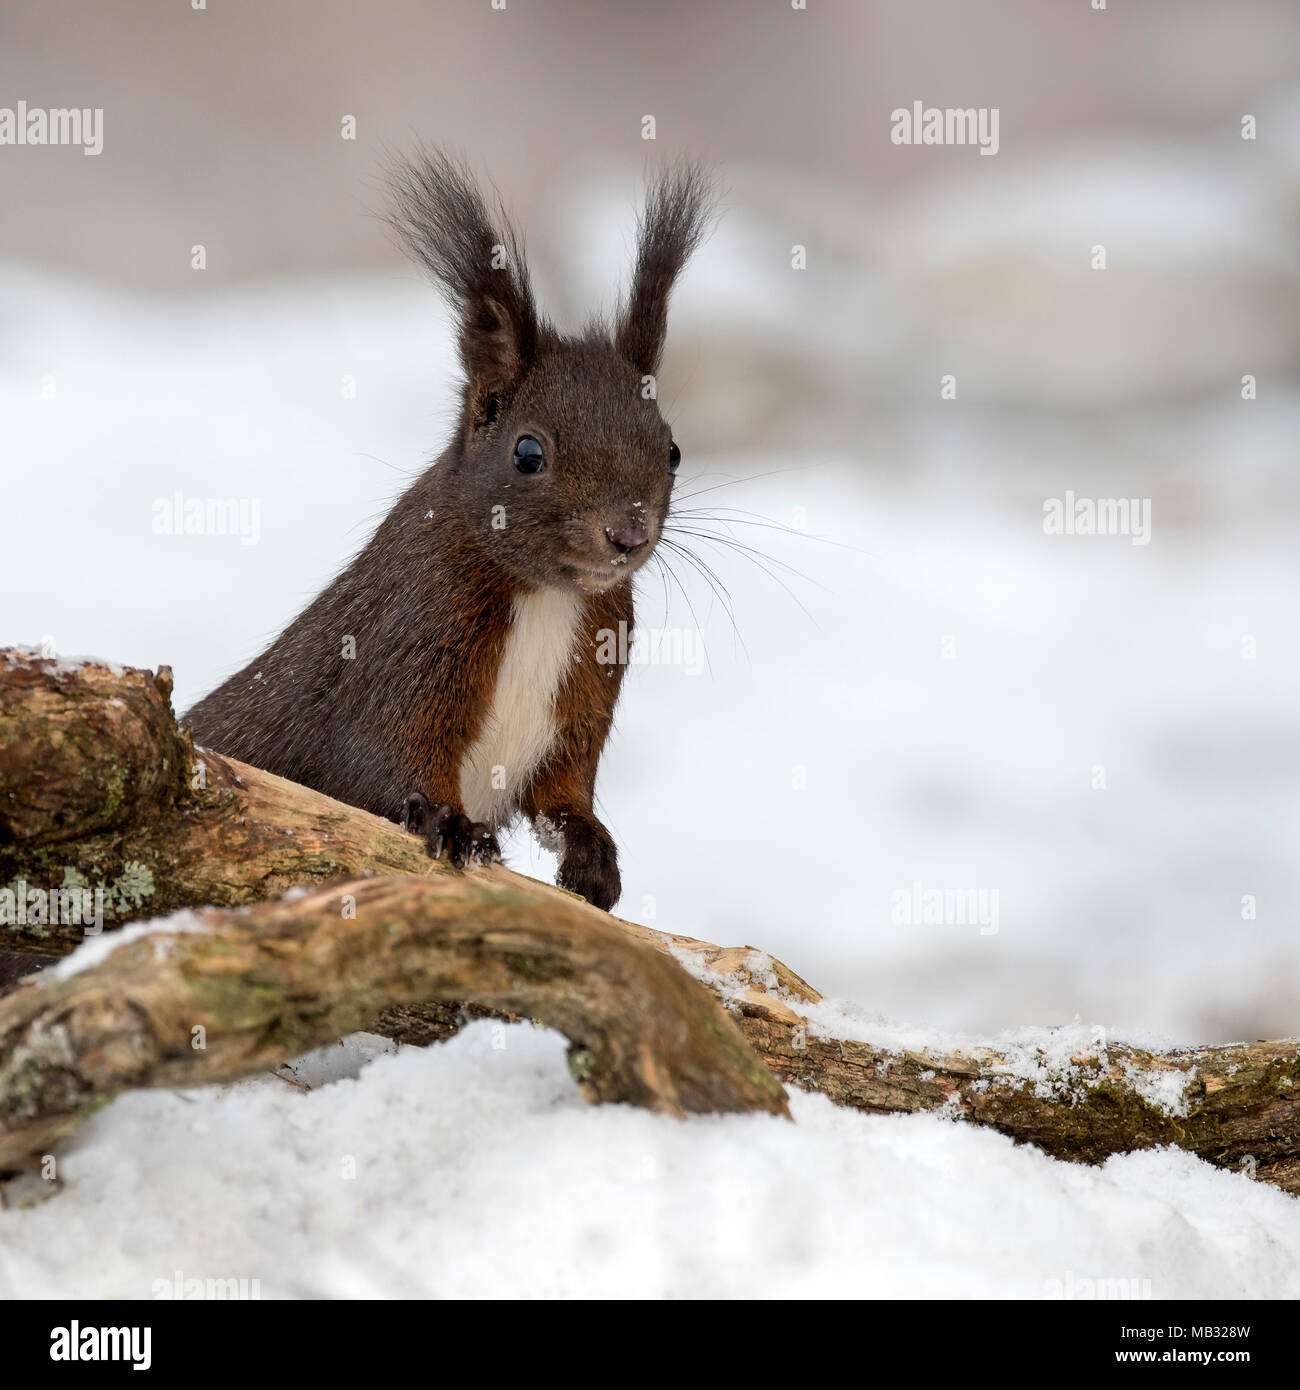 Eurasian red squirrel (Sciurus vulgaris) on the ground in the snow, Tyrol, Austria - Stock Image